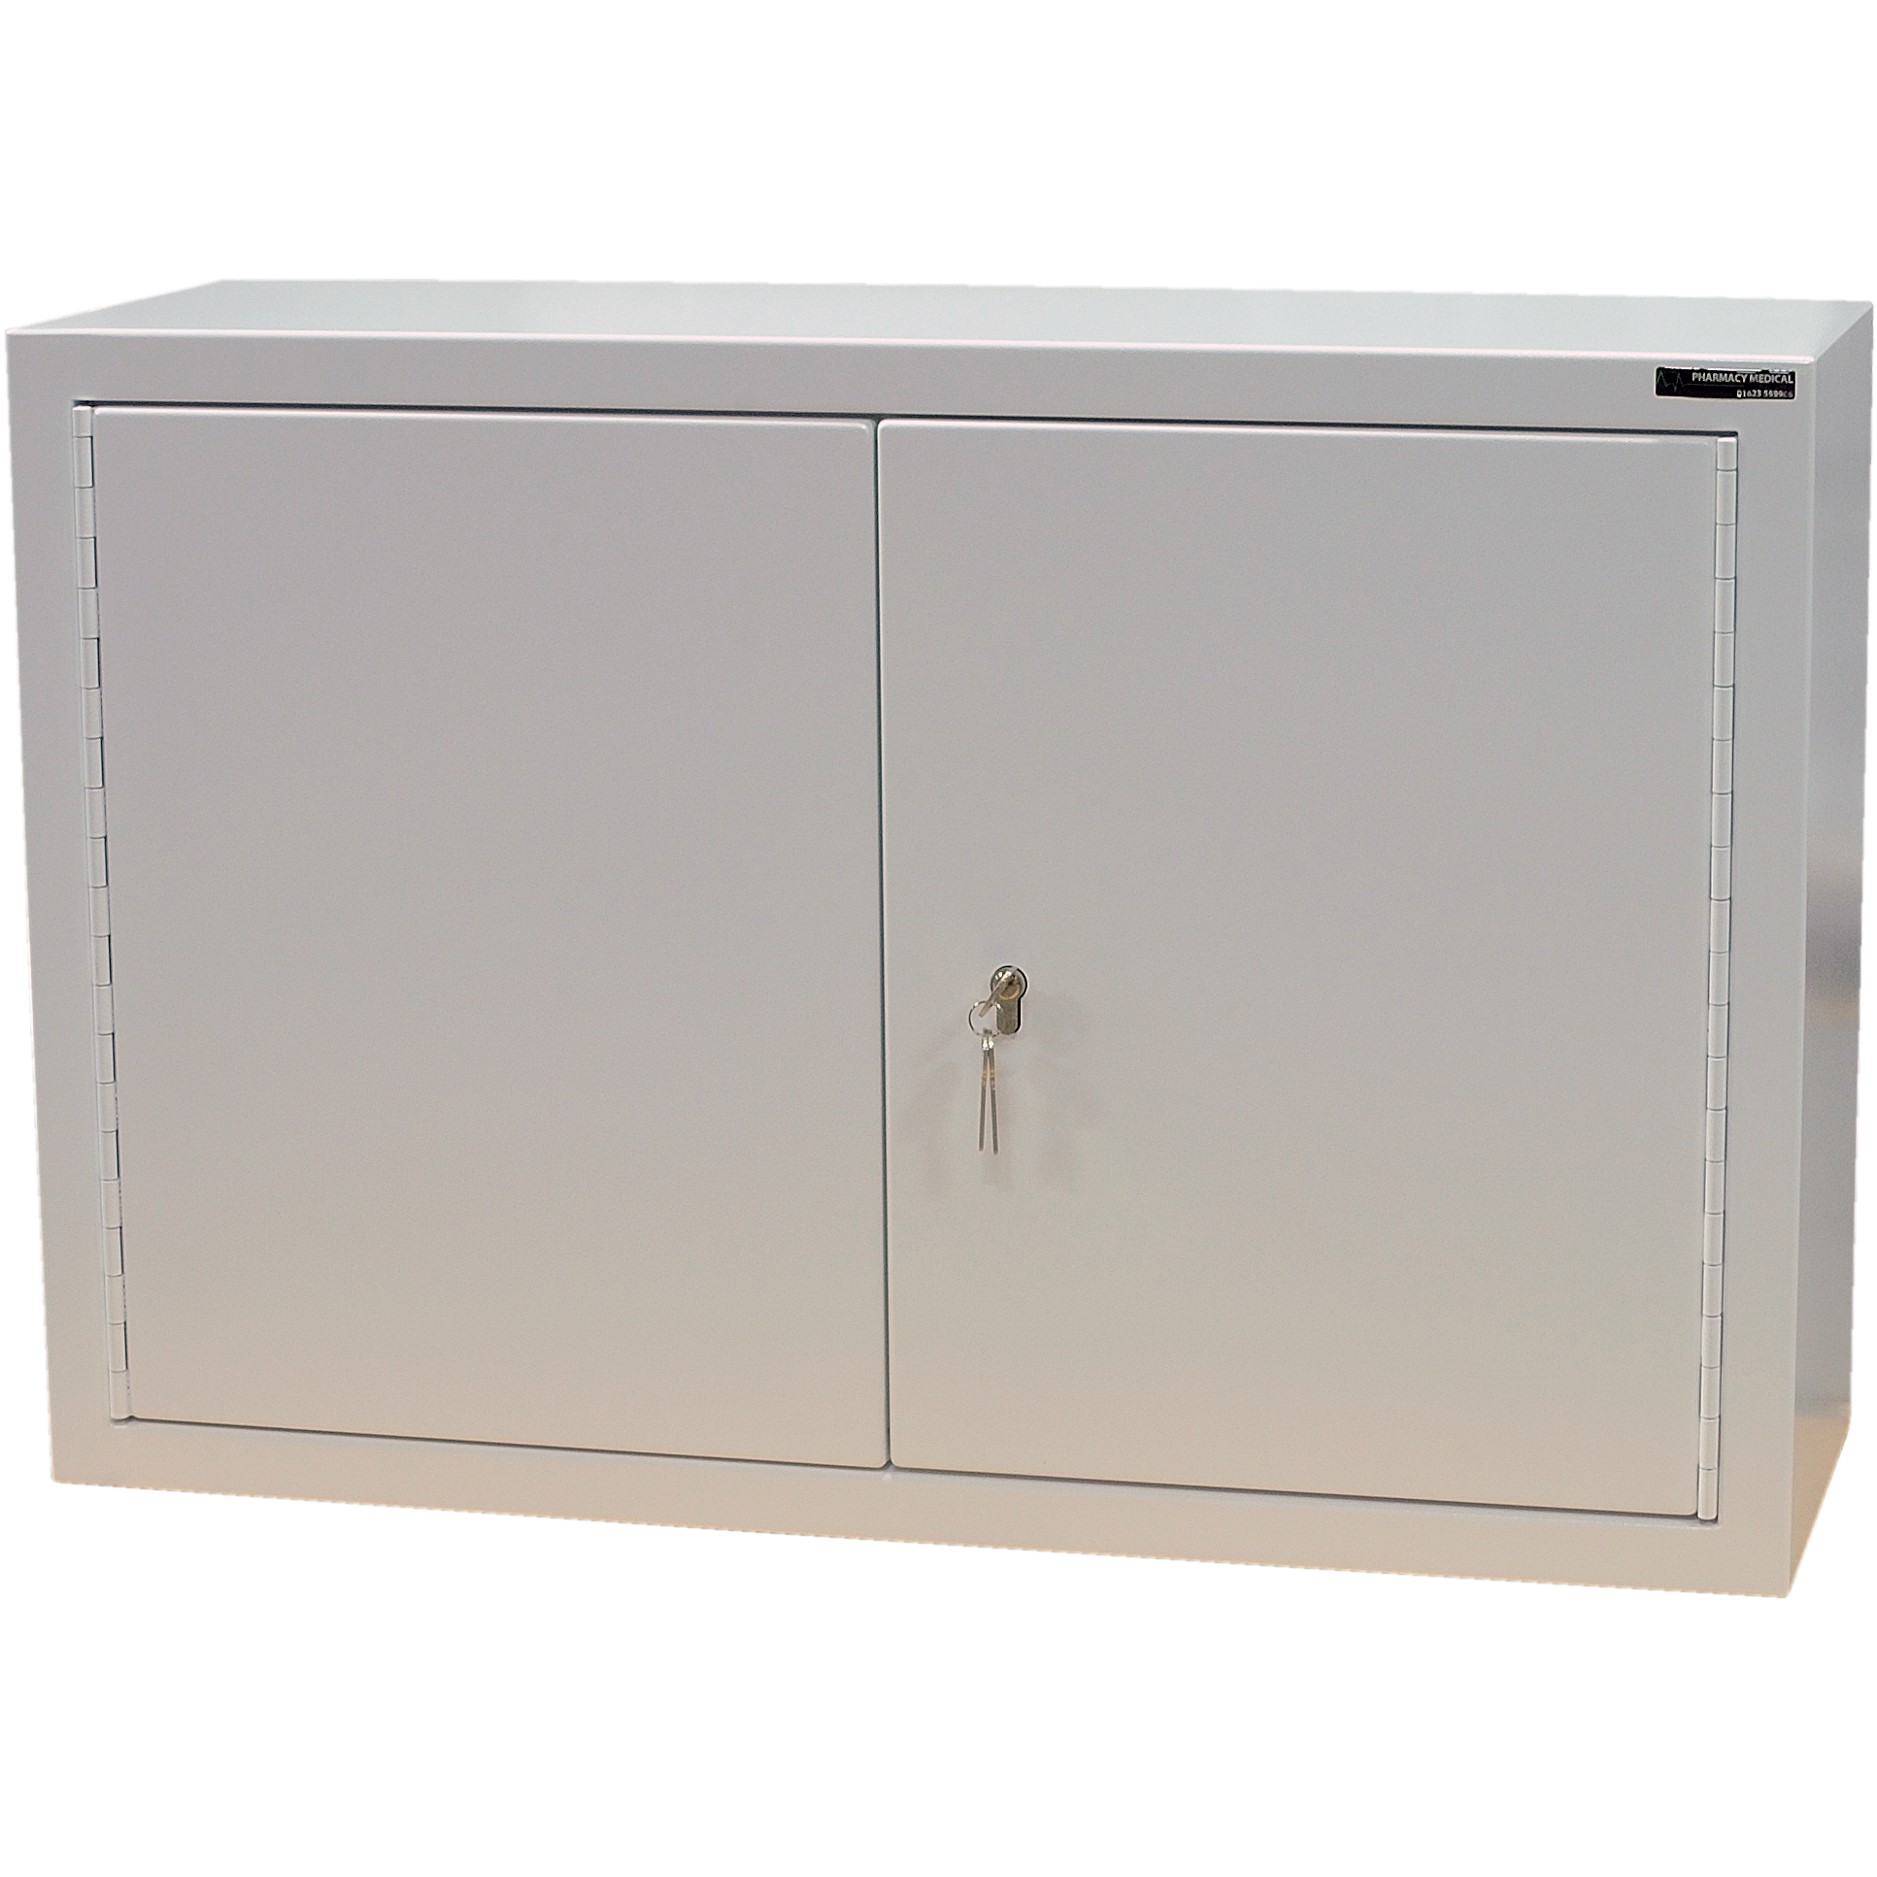 Sloping Top - Deadly Dangerous Cabinet